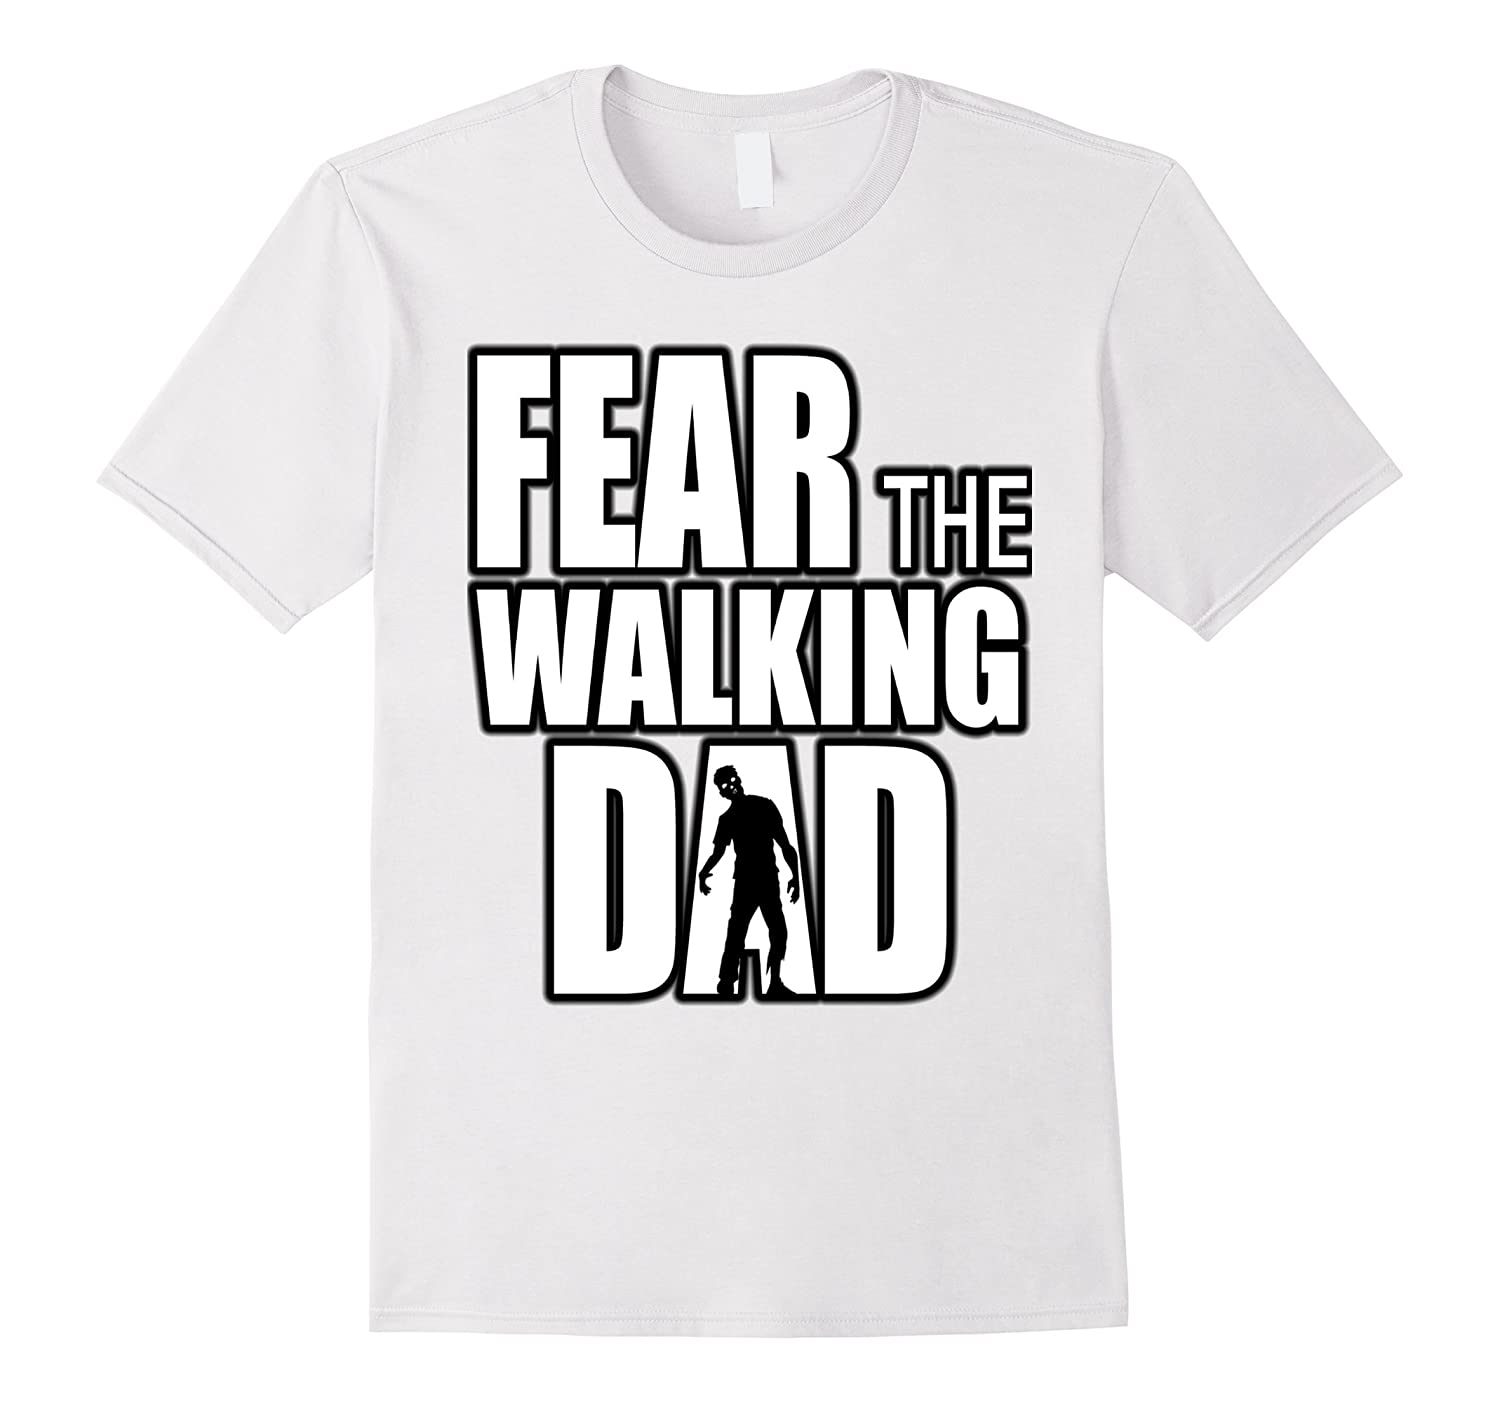 194b9b3ba Fear the Walking DAD T-Shirt for Fathers Day Funny Zombie-TH - TEEHELEN